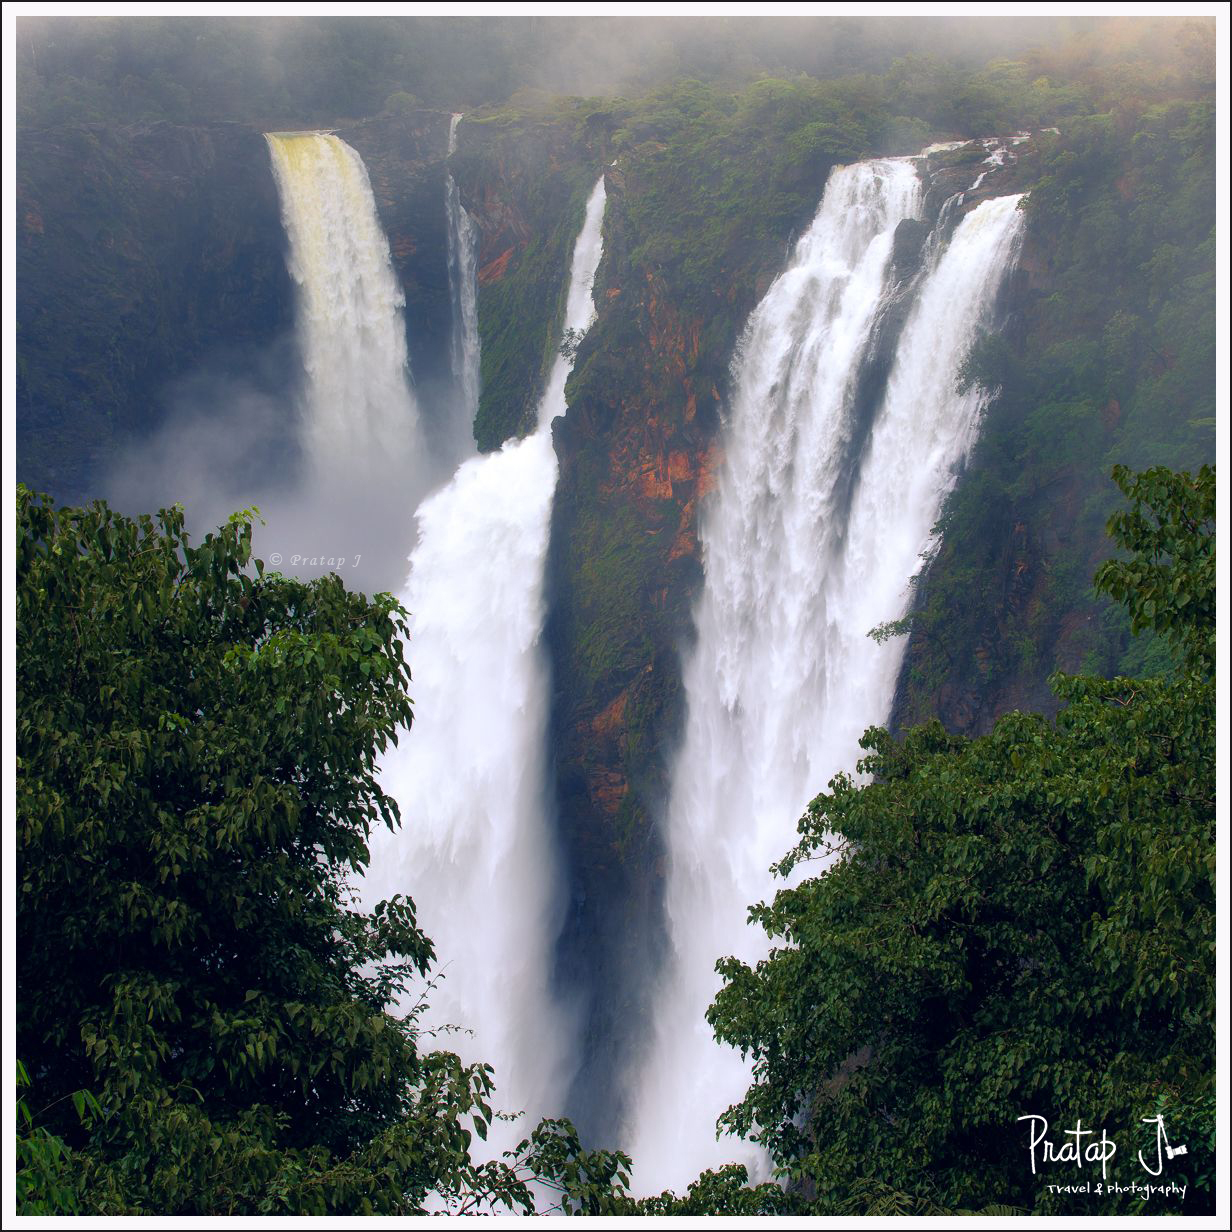 View of Jog Falls in Monsoon